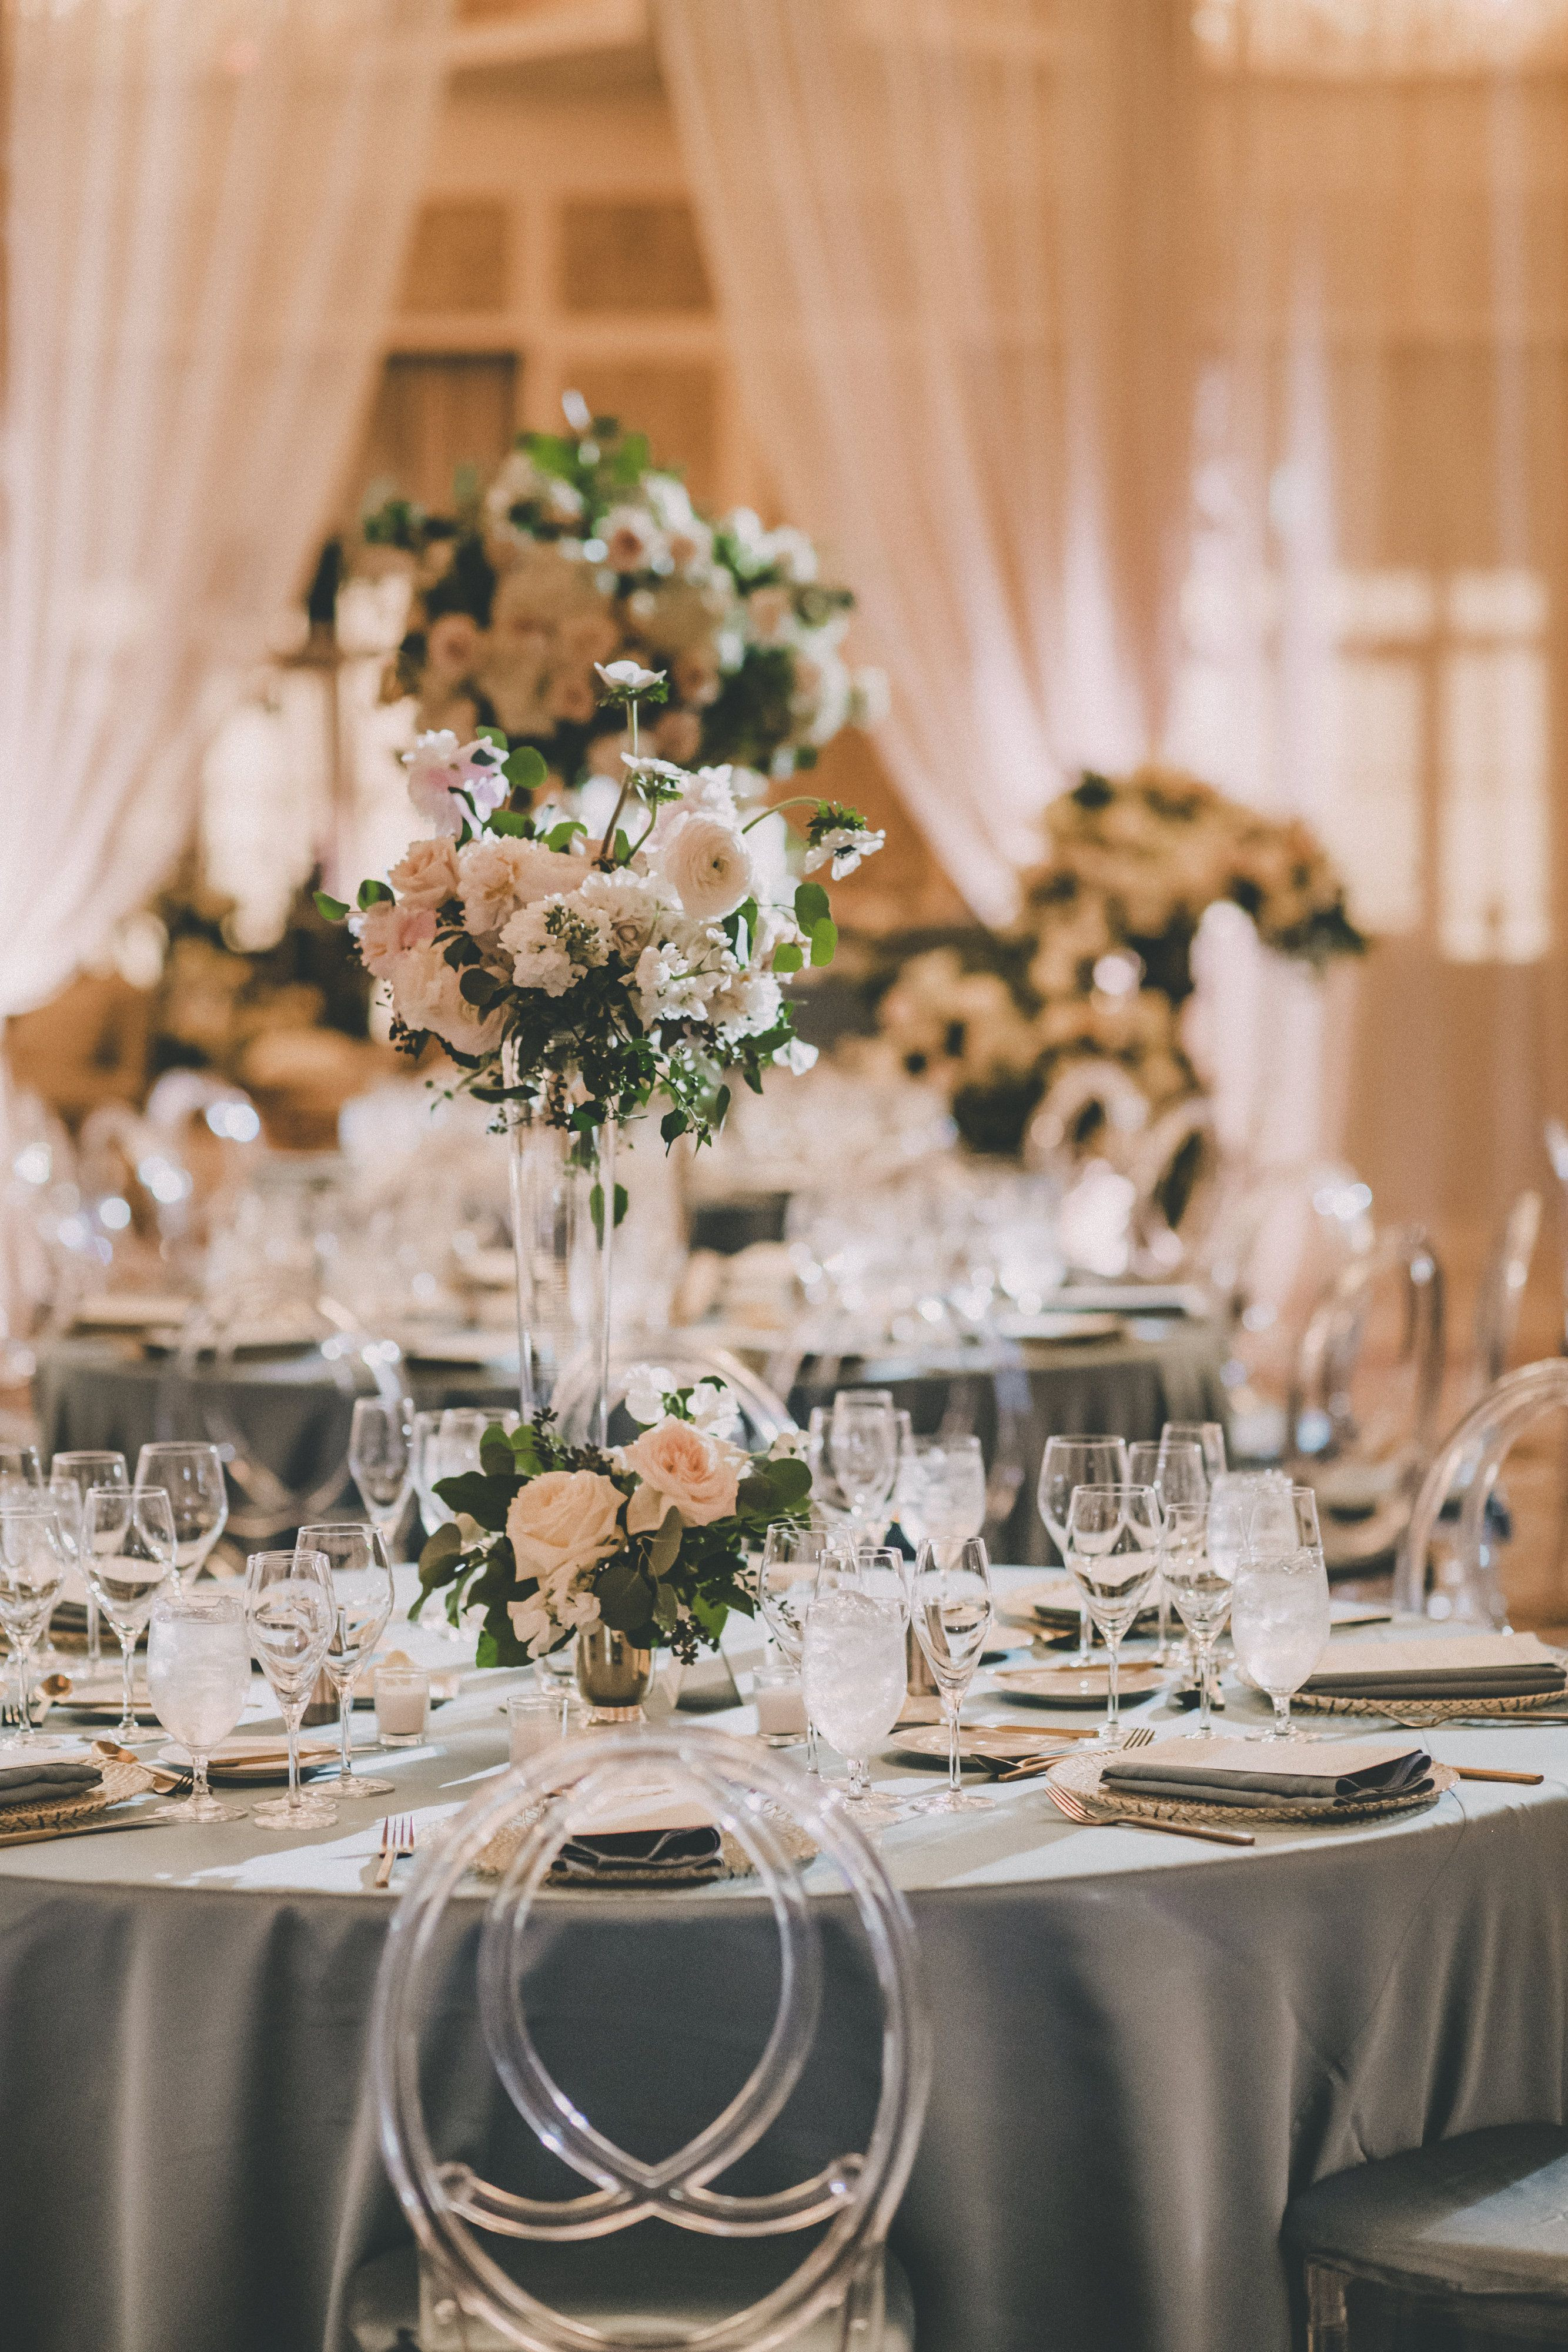 Flower Vase Online India Of Tall Gold Vases Fresh Beautiful Ballroom is Draped and Filled with Regarding Tall Gold Vases Fresh Beautiful Ballroom is Draped and Filled with Three Heights Of Flower